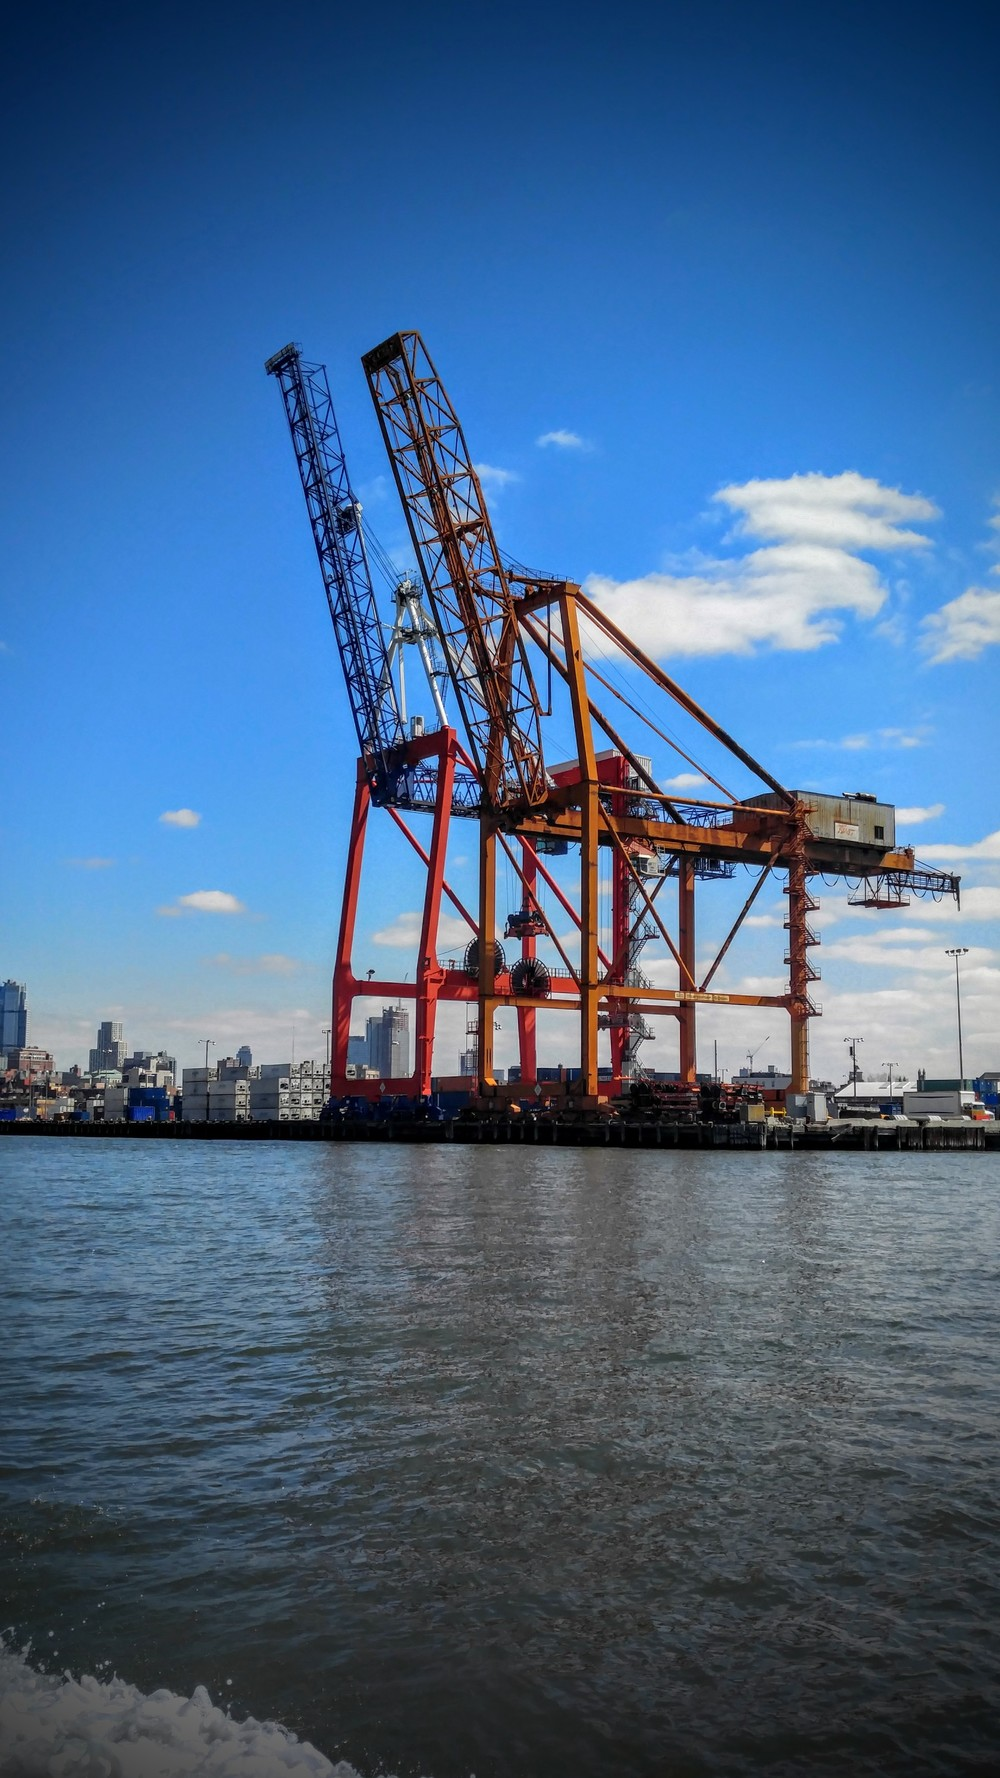 The cranes along the Brooklyn shoreline got me thinking about lessons on the labor unions of the early 20th century,  non-fiction texts on globalization, and how to build a functioning crane out of Popsicle sticks and other cheap materials.